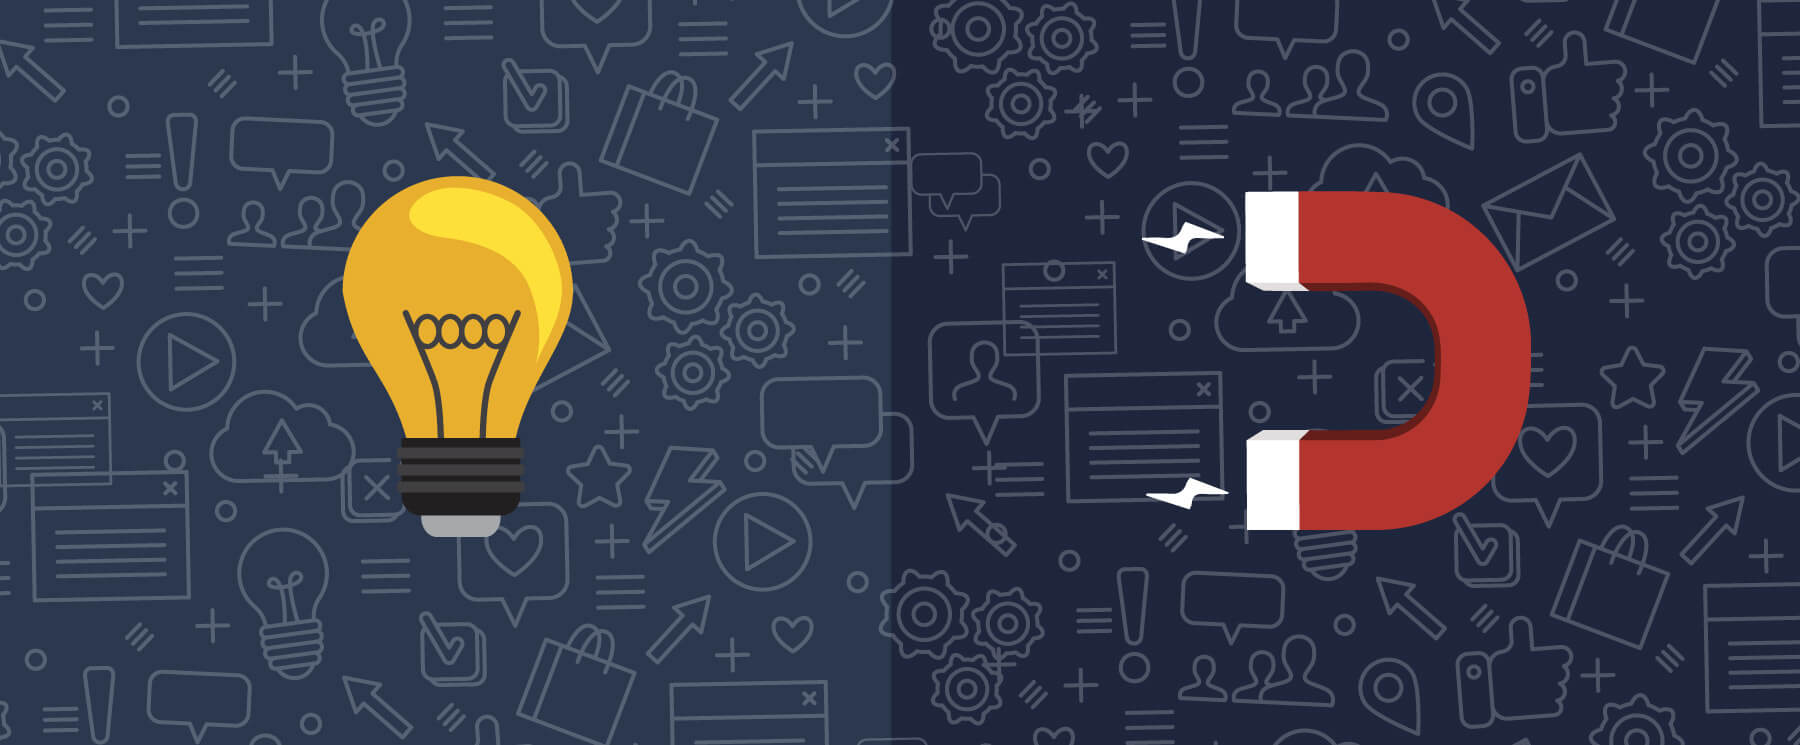 Content Marketing vs. Inbound Marketing: What's The Difference And How Do They Work Together?